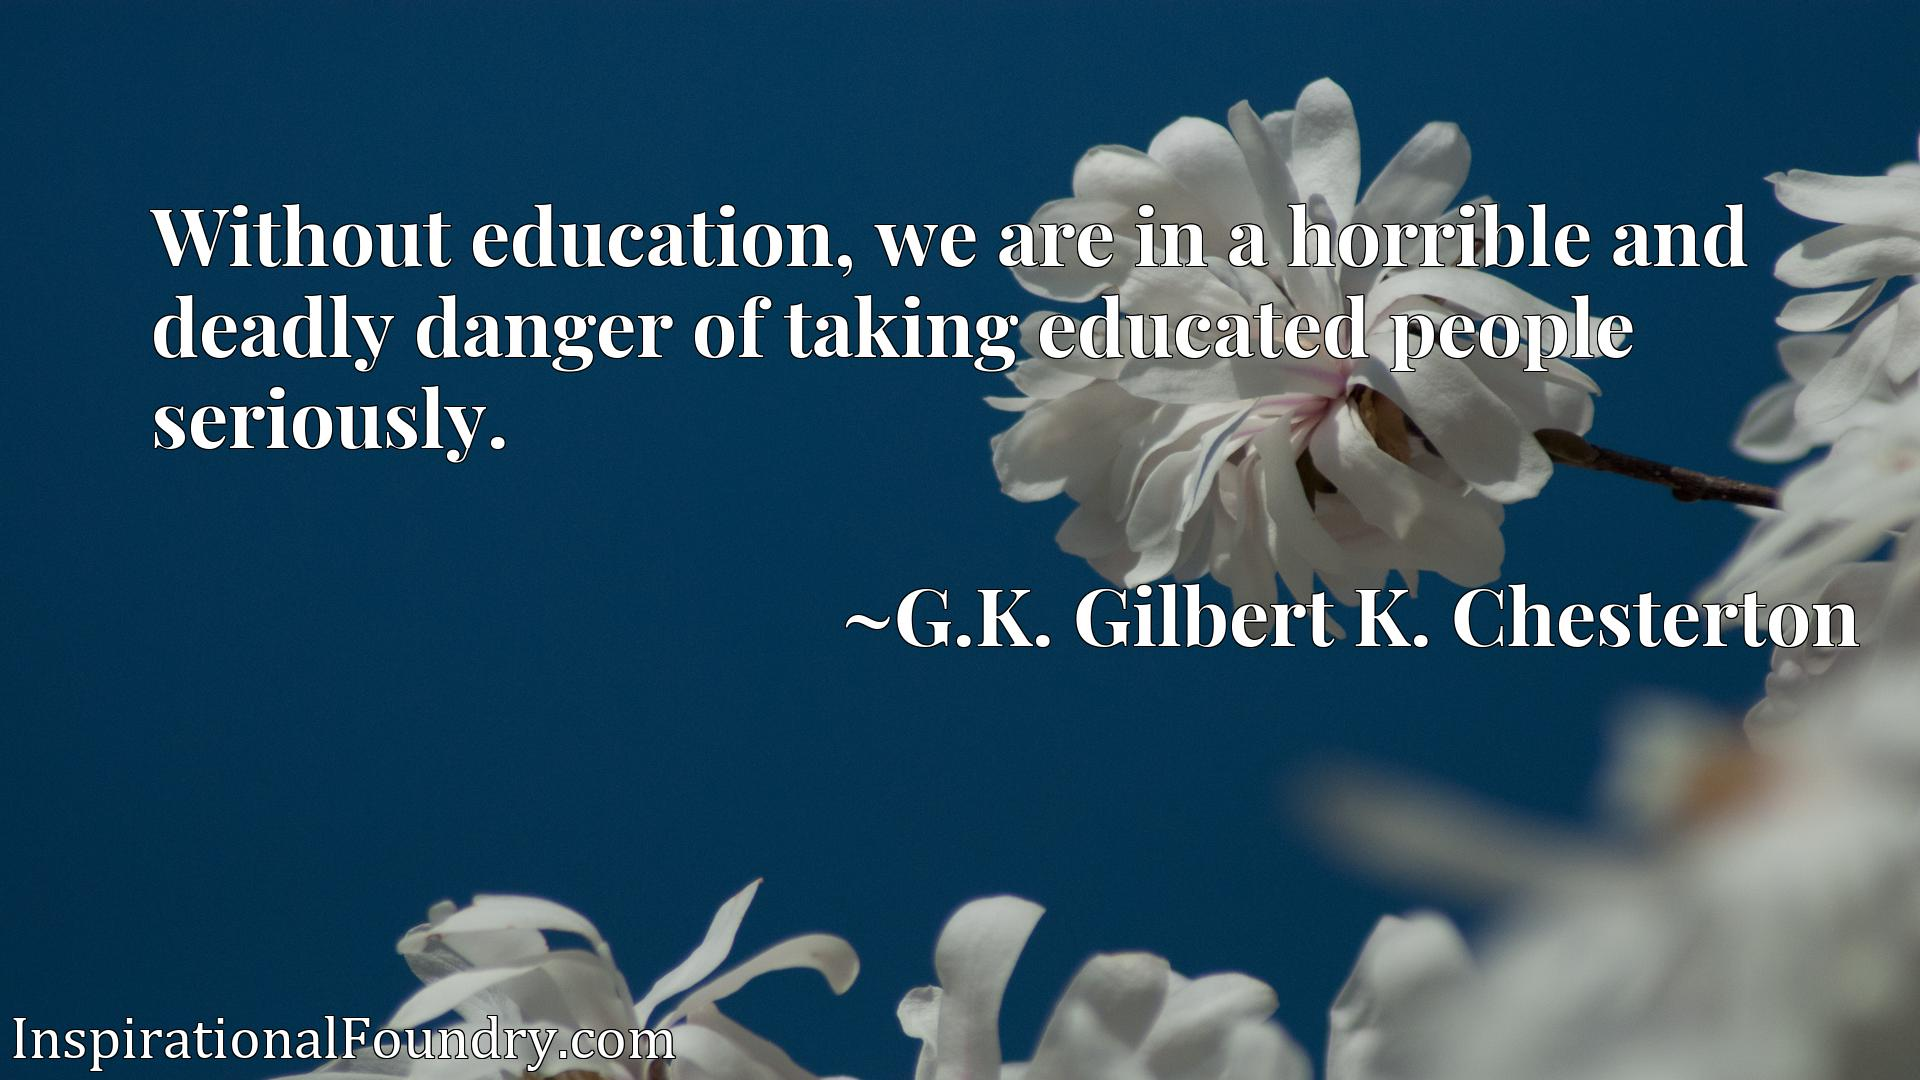 Without education, we are in a horrible and deadly danger of taking educated people seriously.